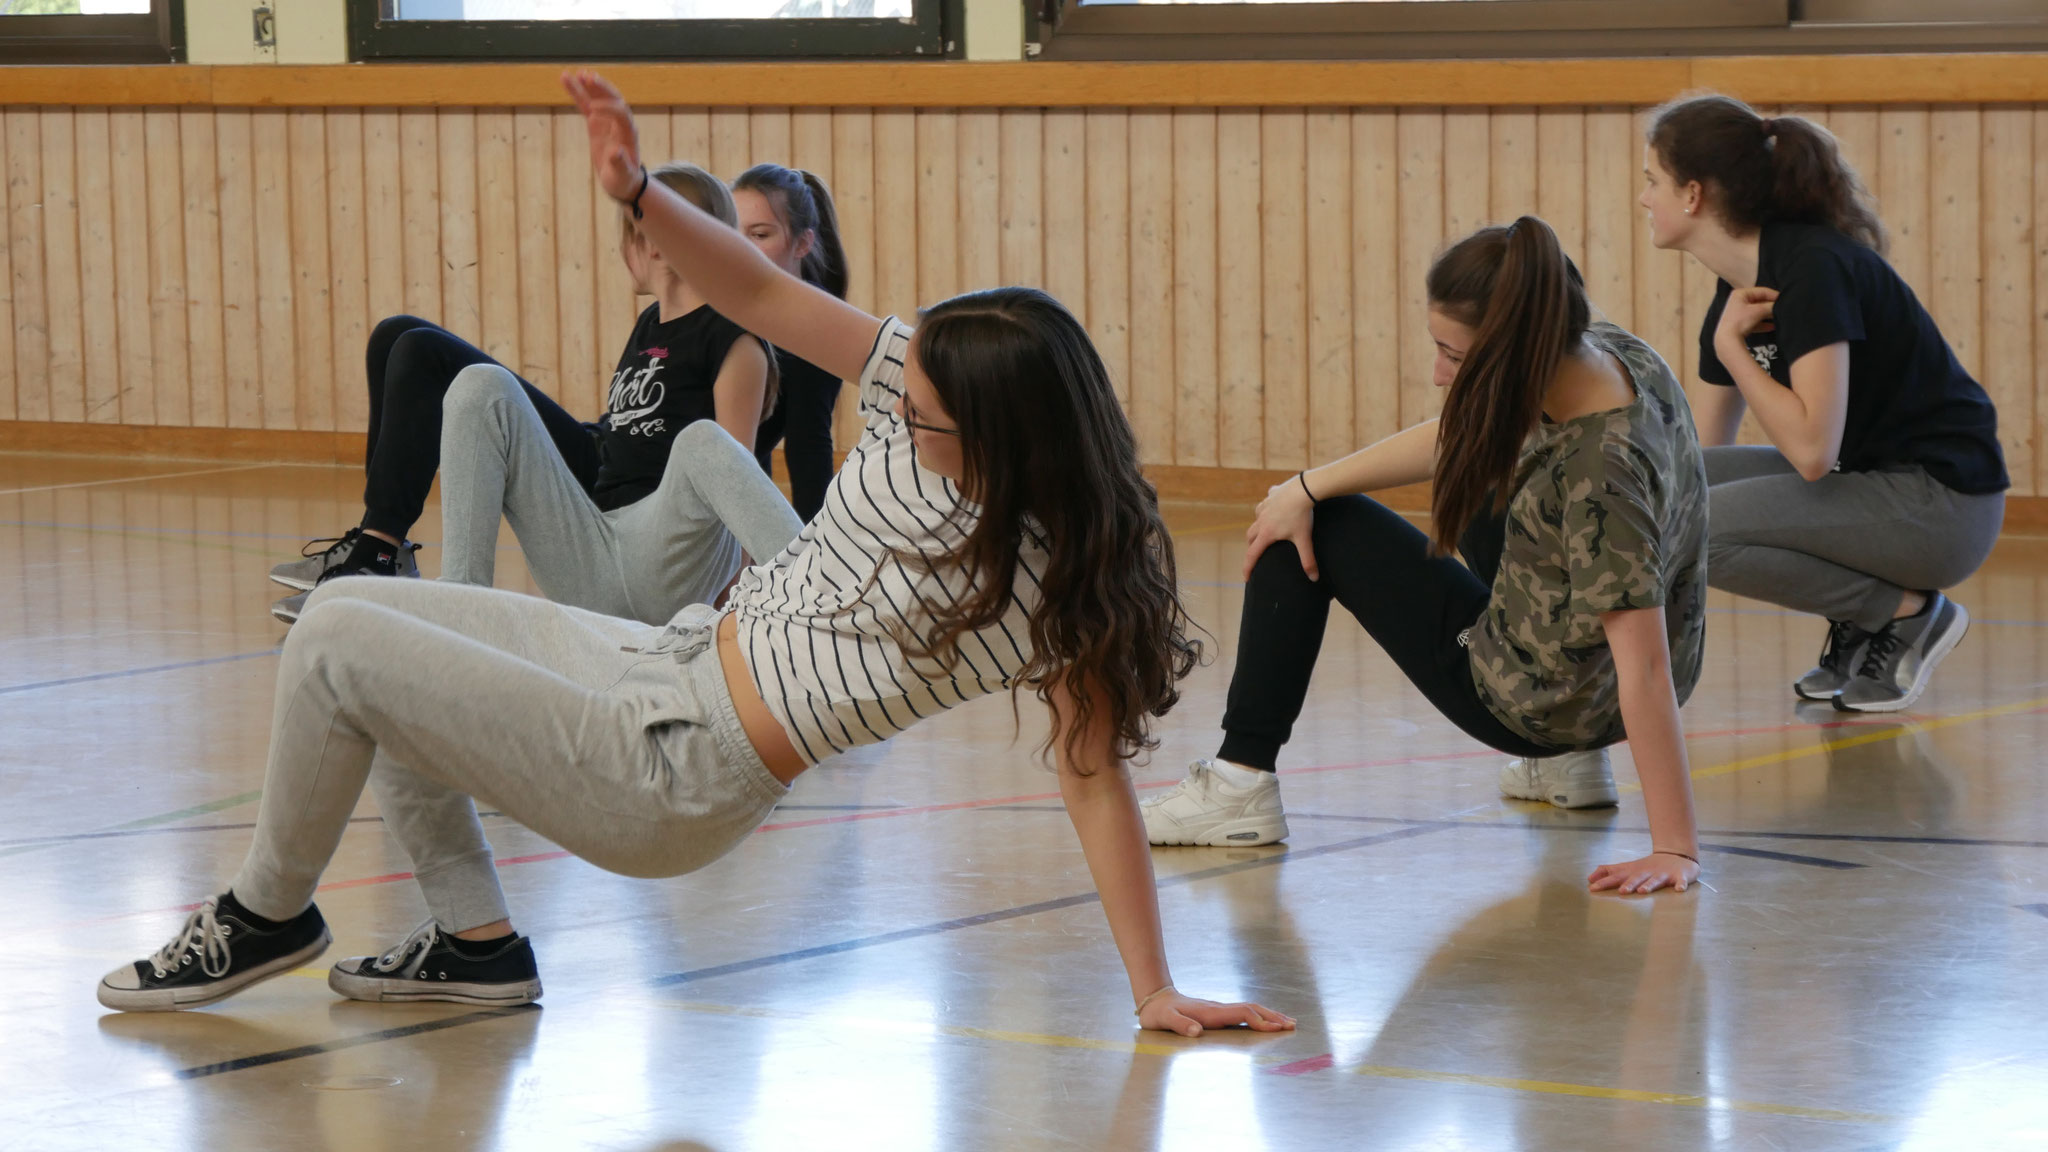 Breakdance-Workshop